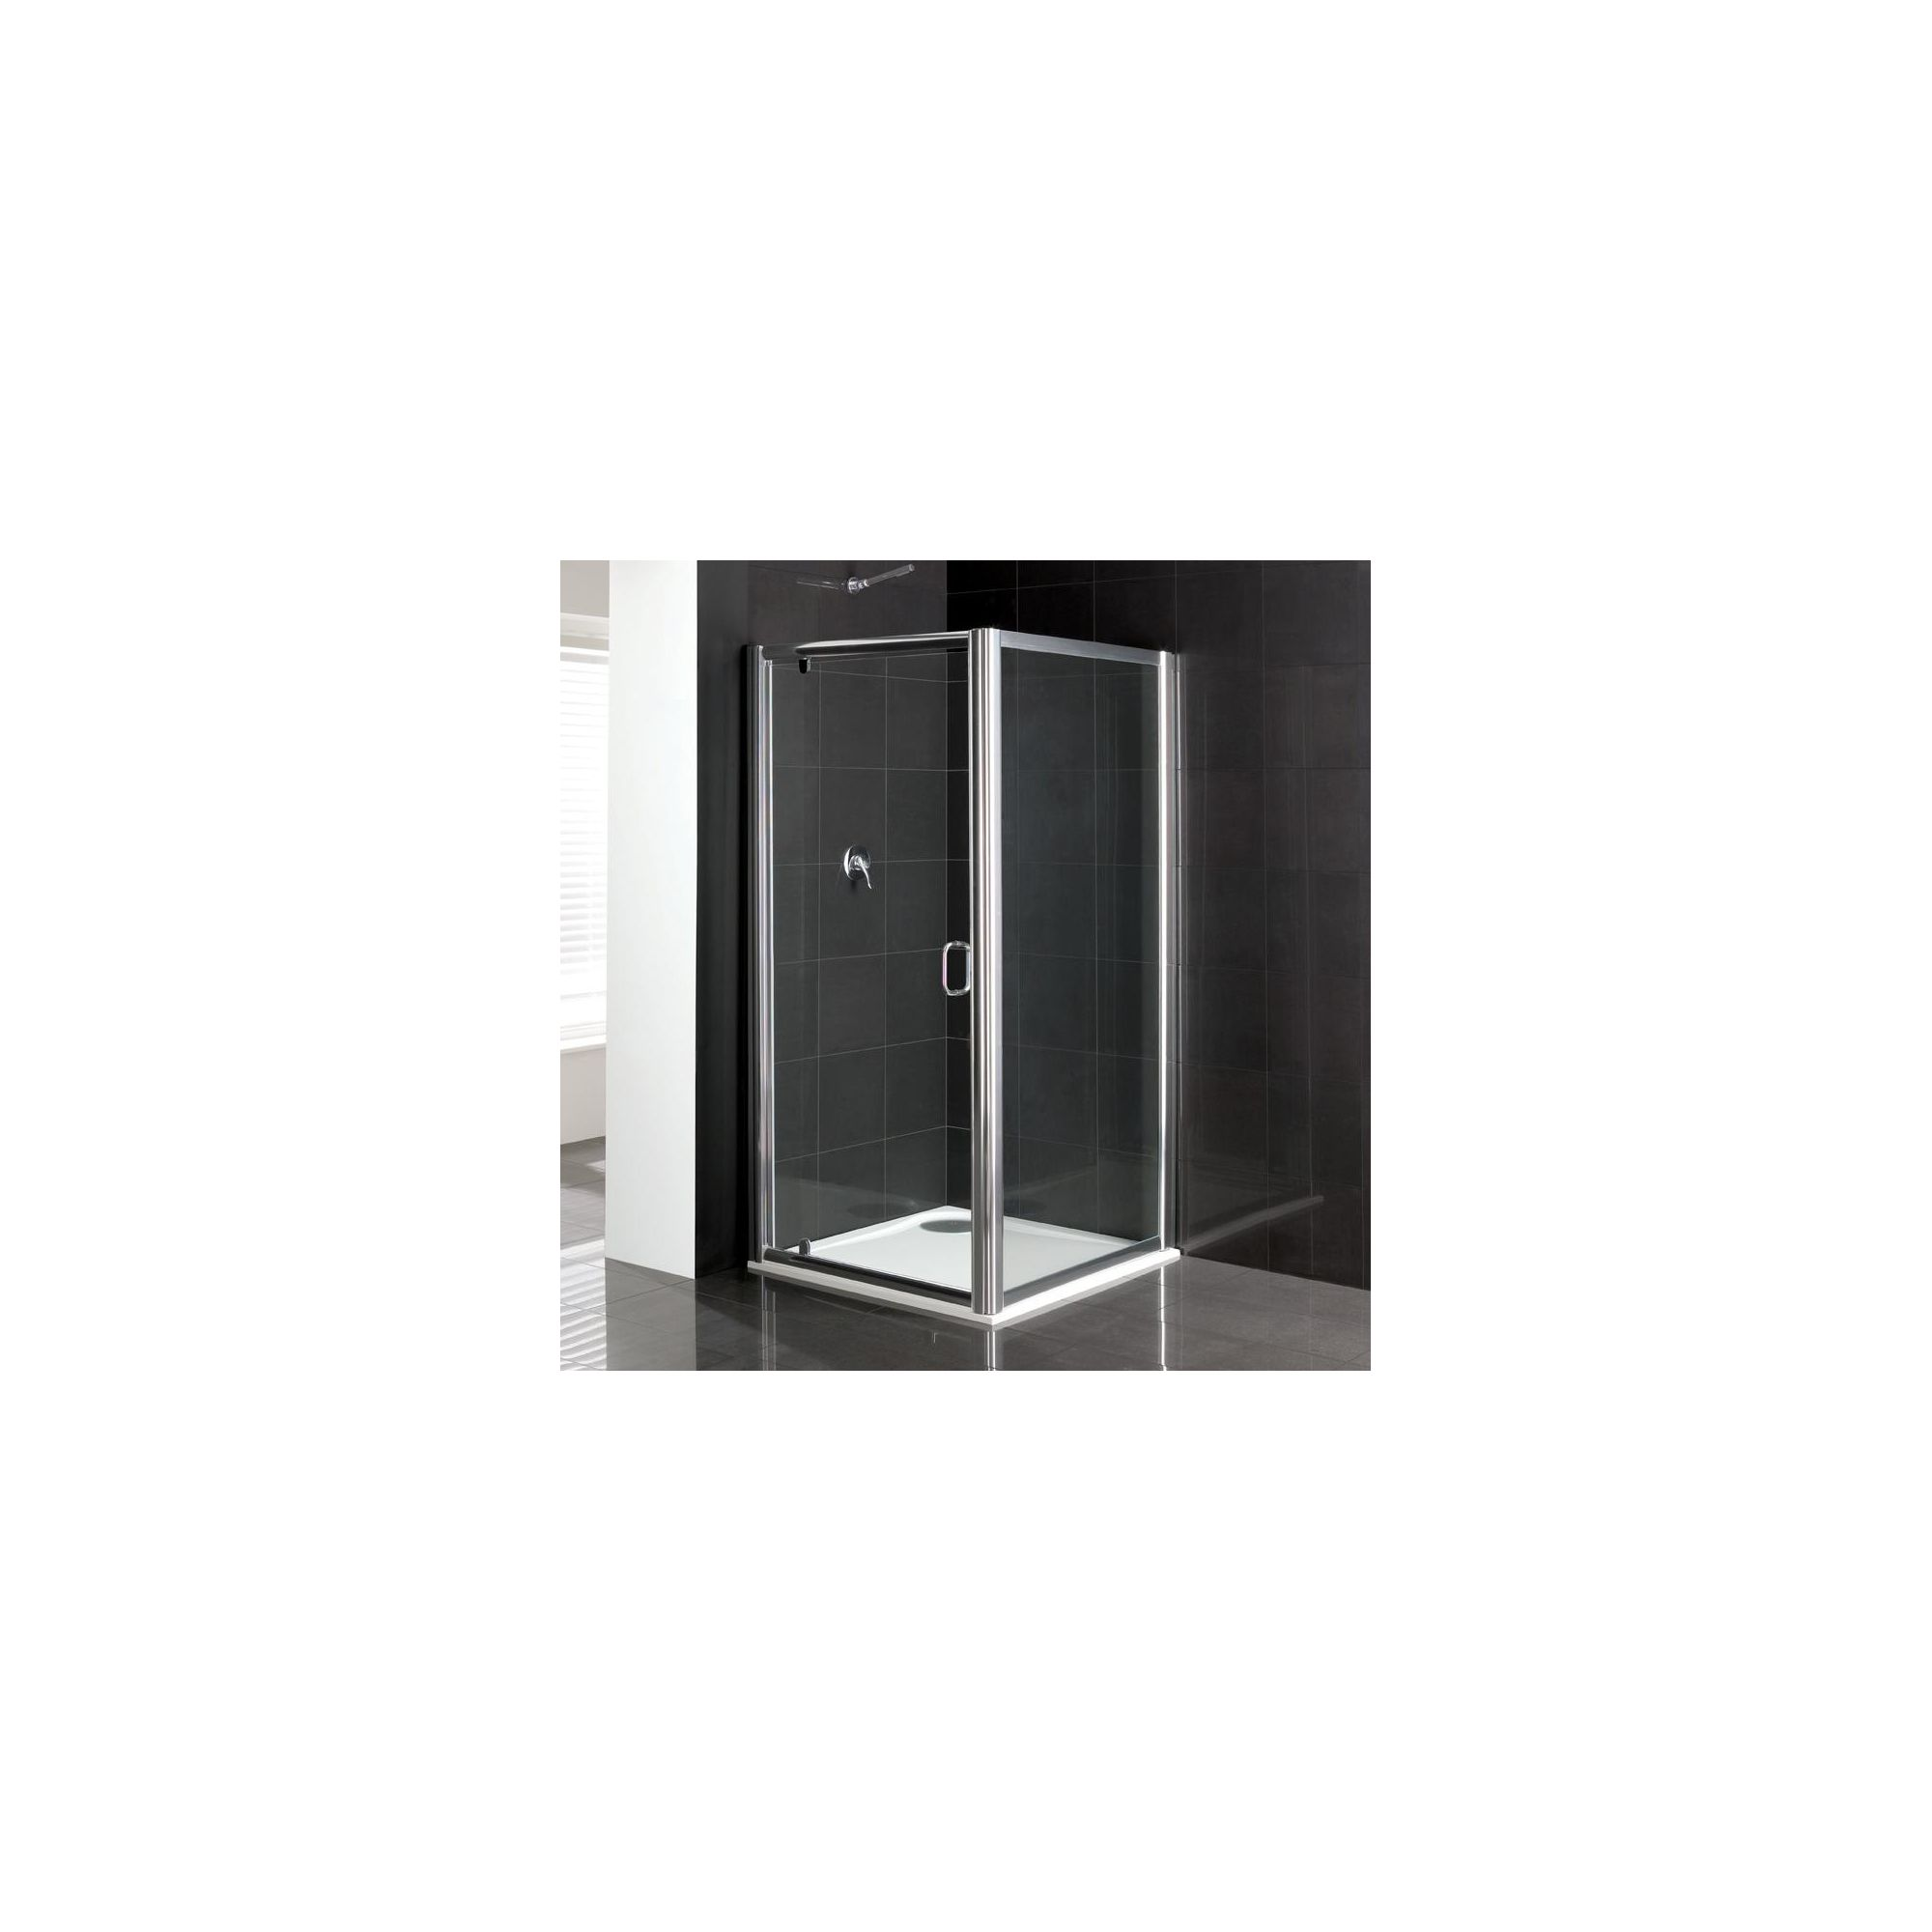 Duchy Elite Silver Pivot Door Shower Enclosure with Towel Rail, 800mm x 760mm, Standard Tray, 6mm Glass at Tesco Direct